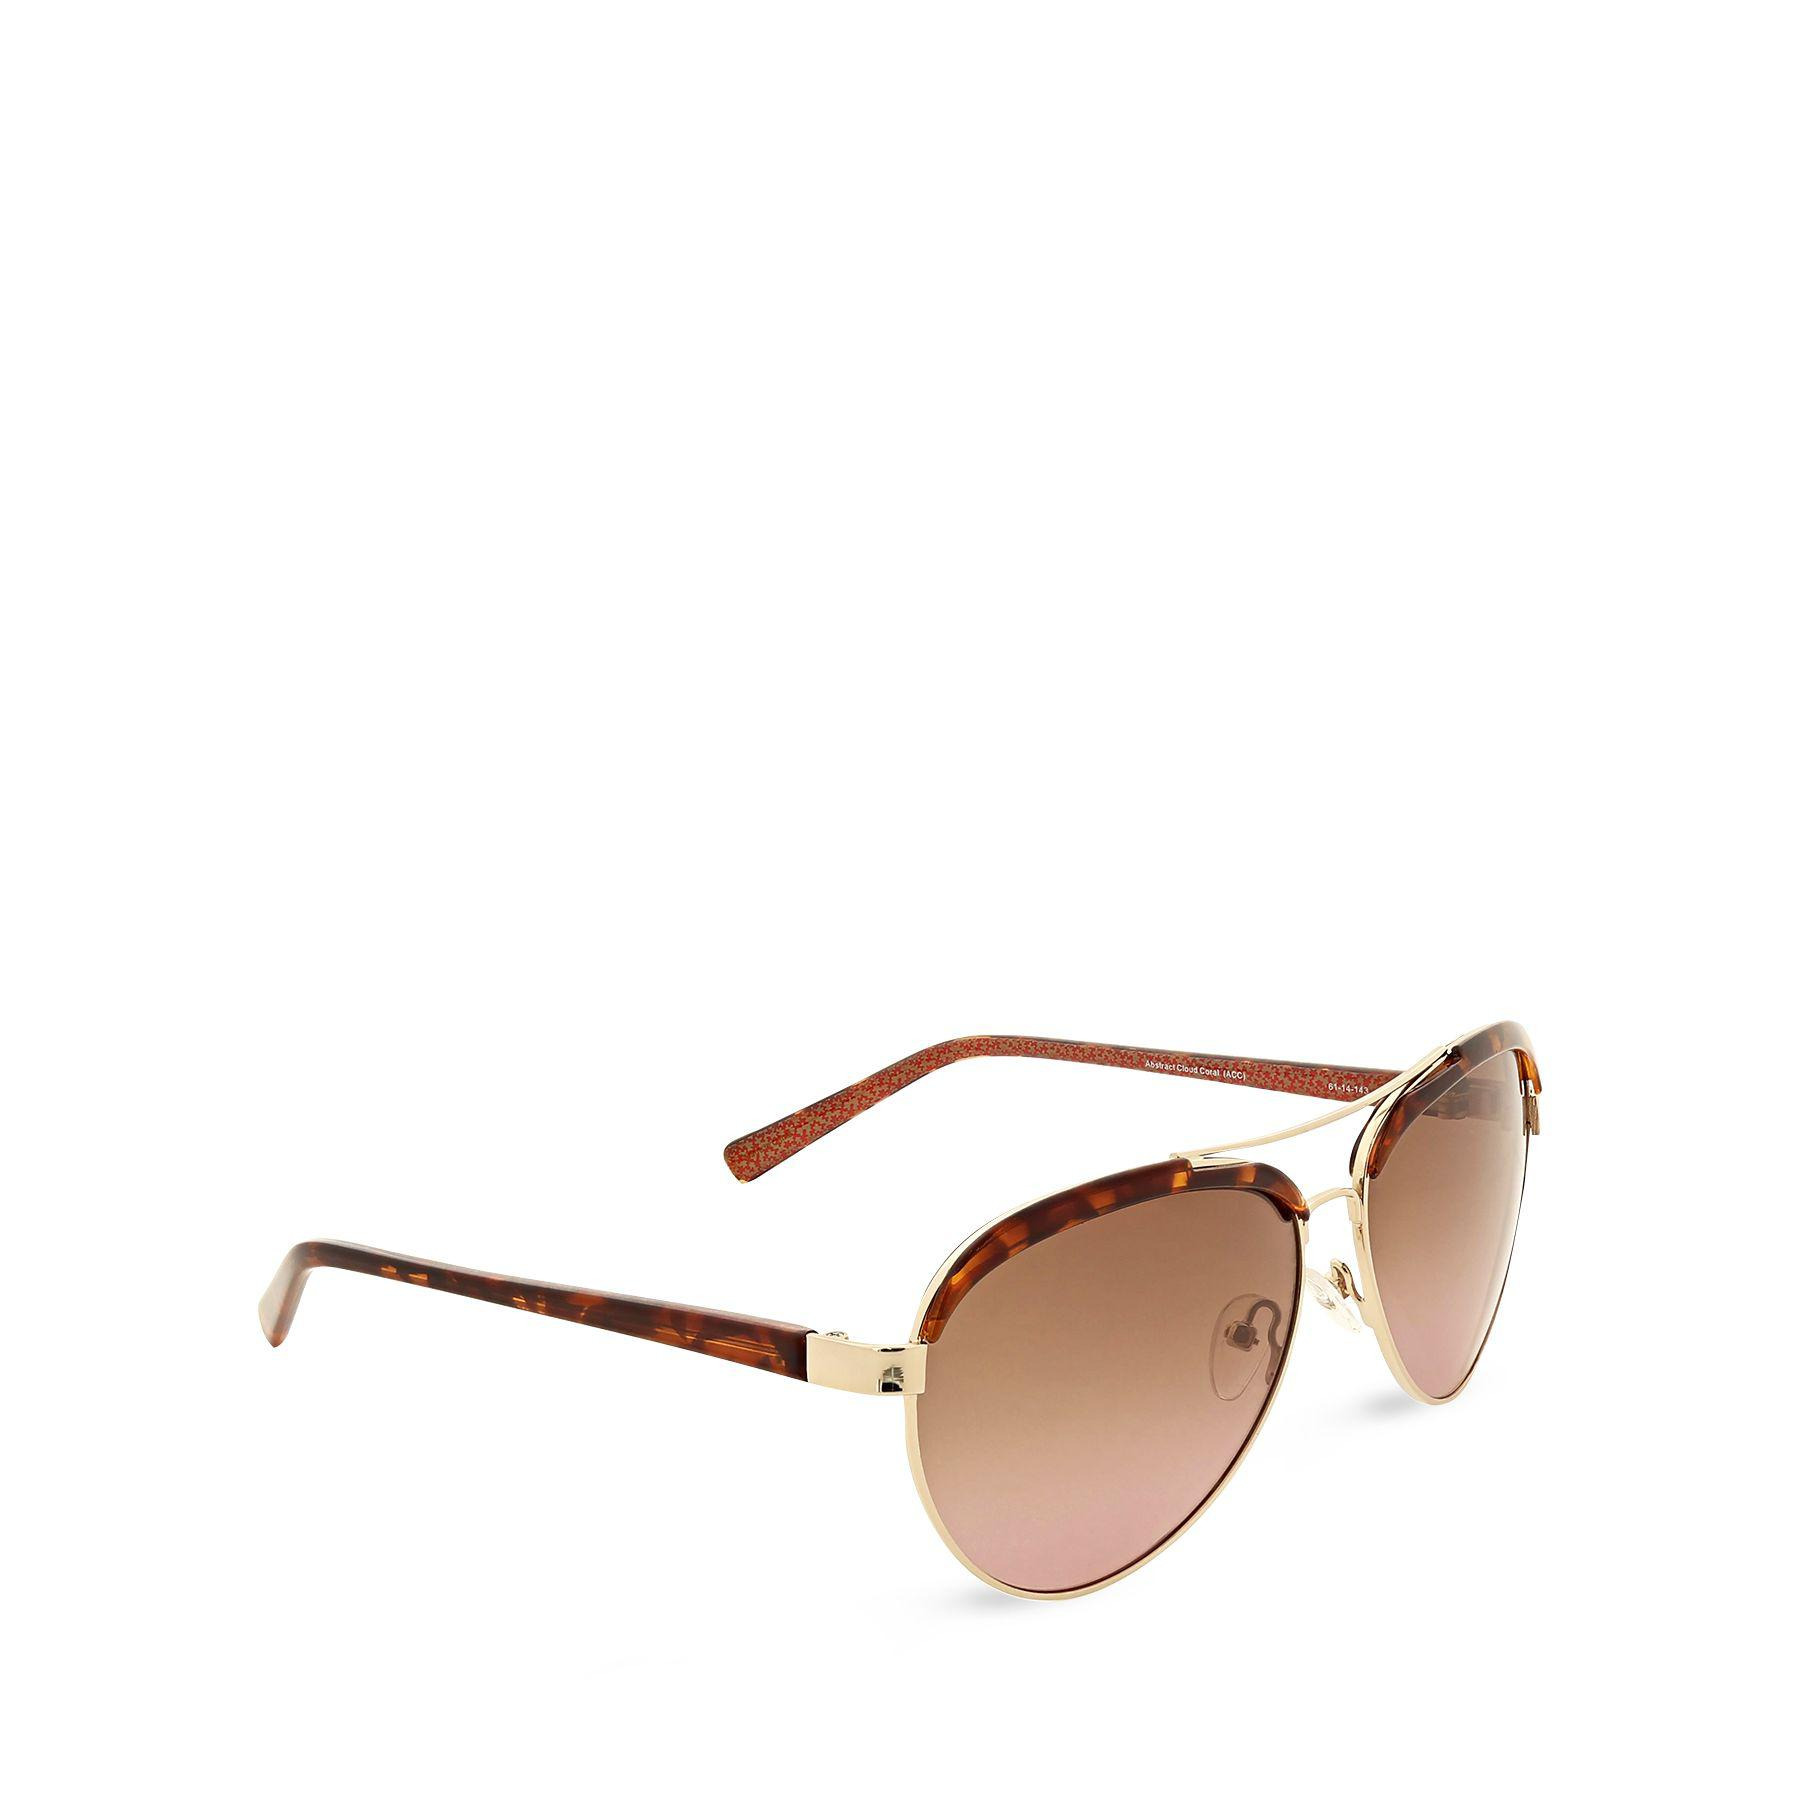 30c6495d63d24 Lyst - Vera Bradley Etta Sunglasses in Brown